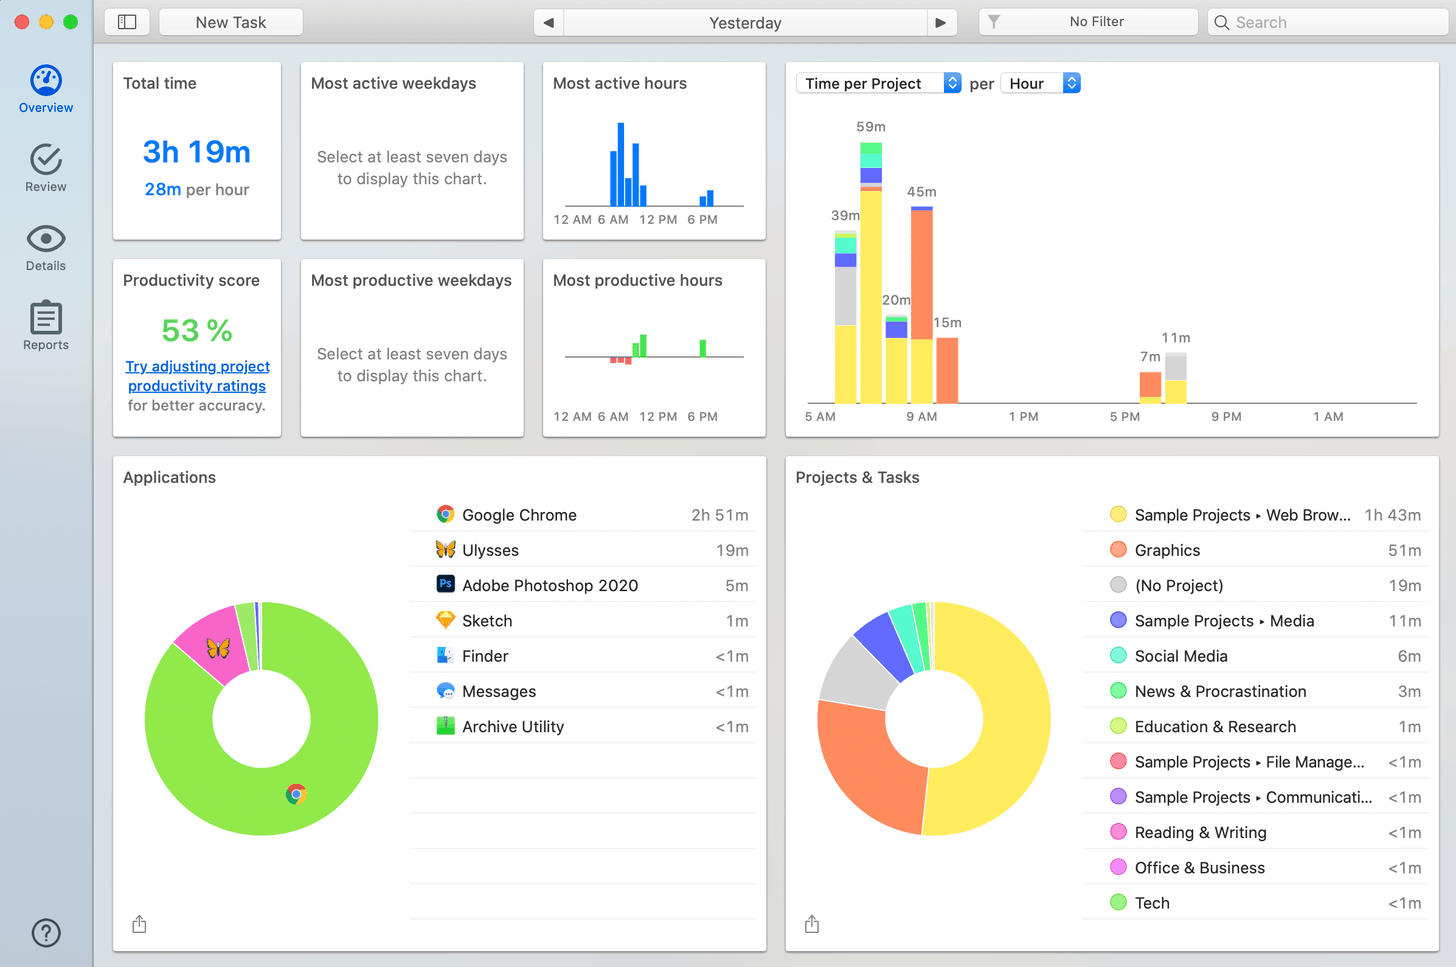 author's activity dashboard in Timing app, showing a breakdown of how she spends her time